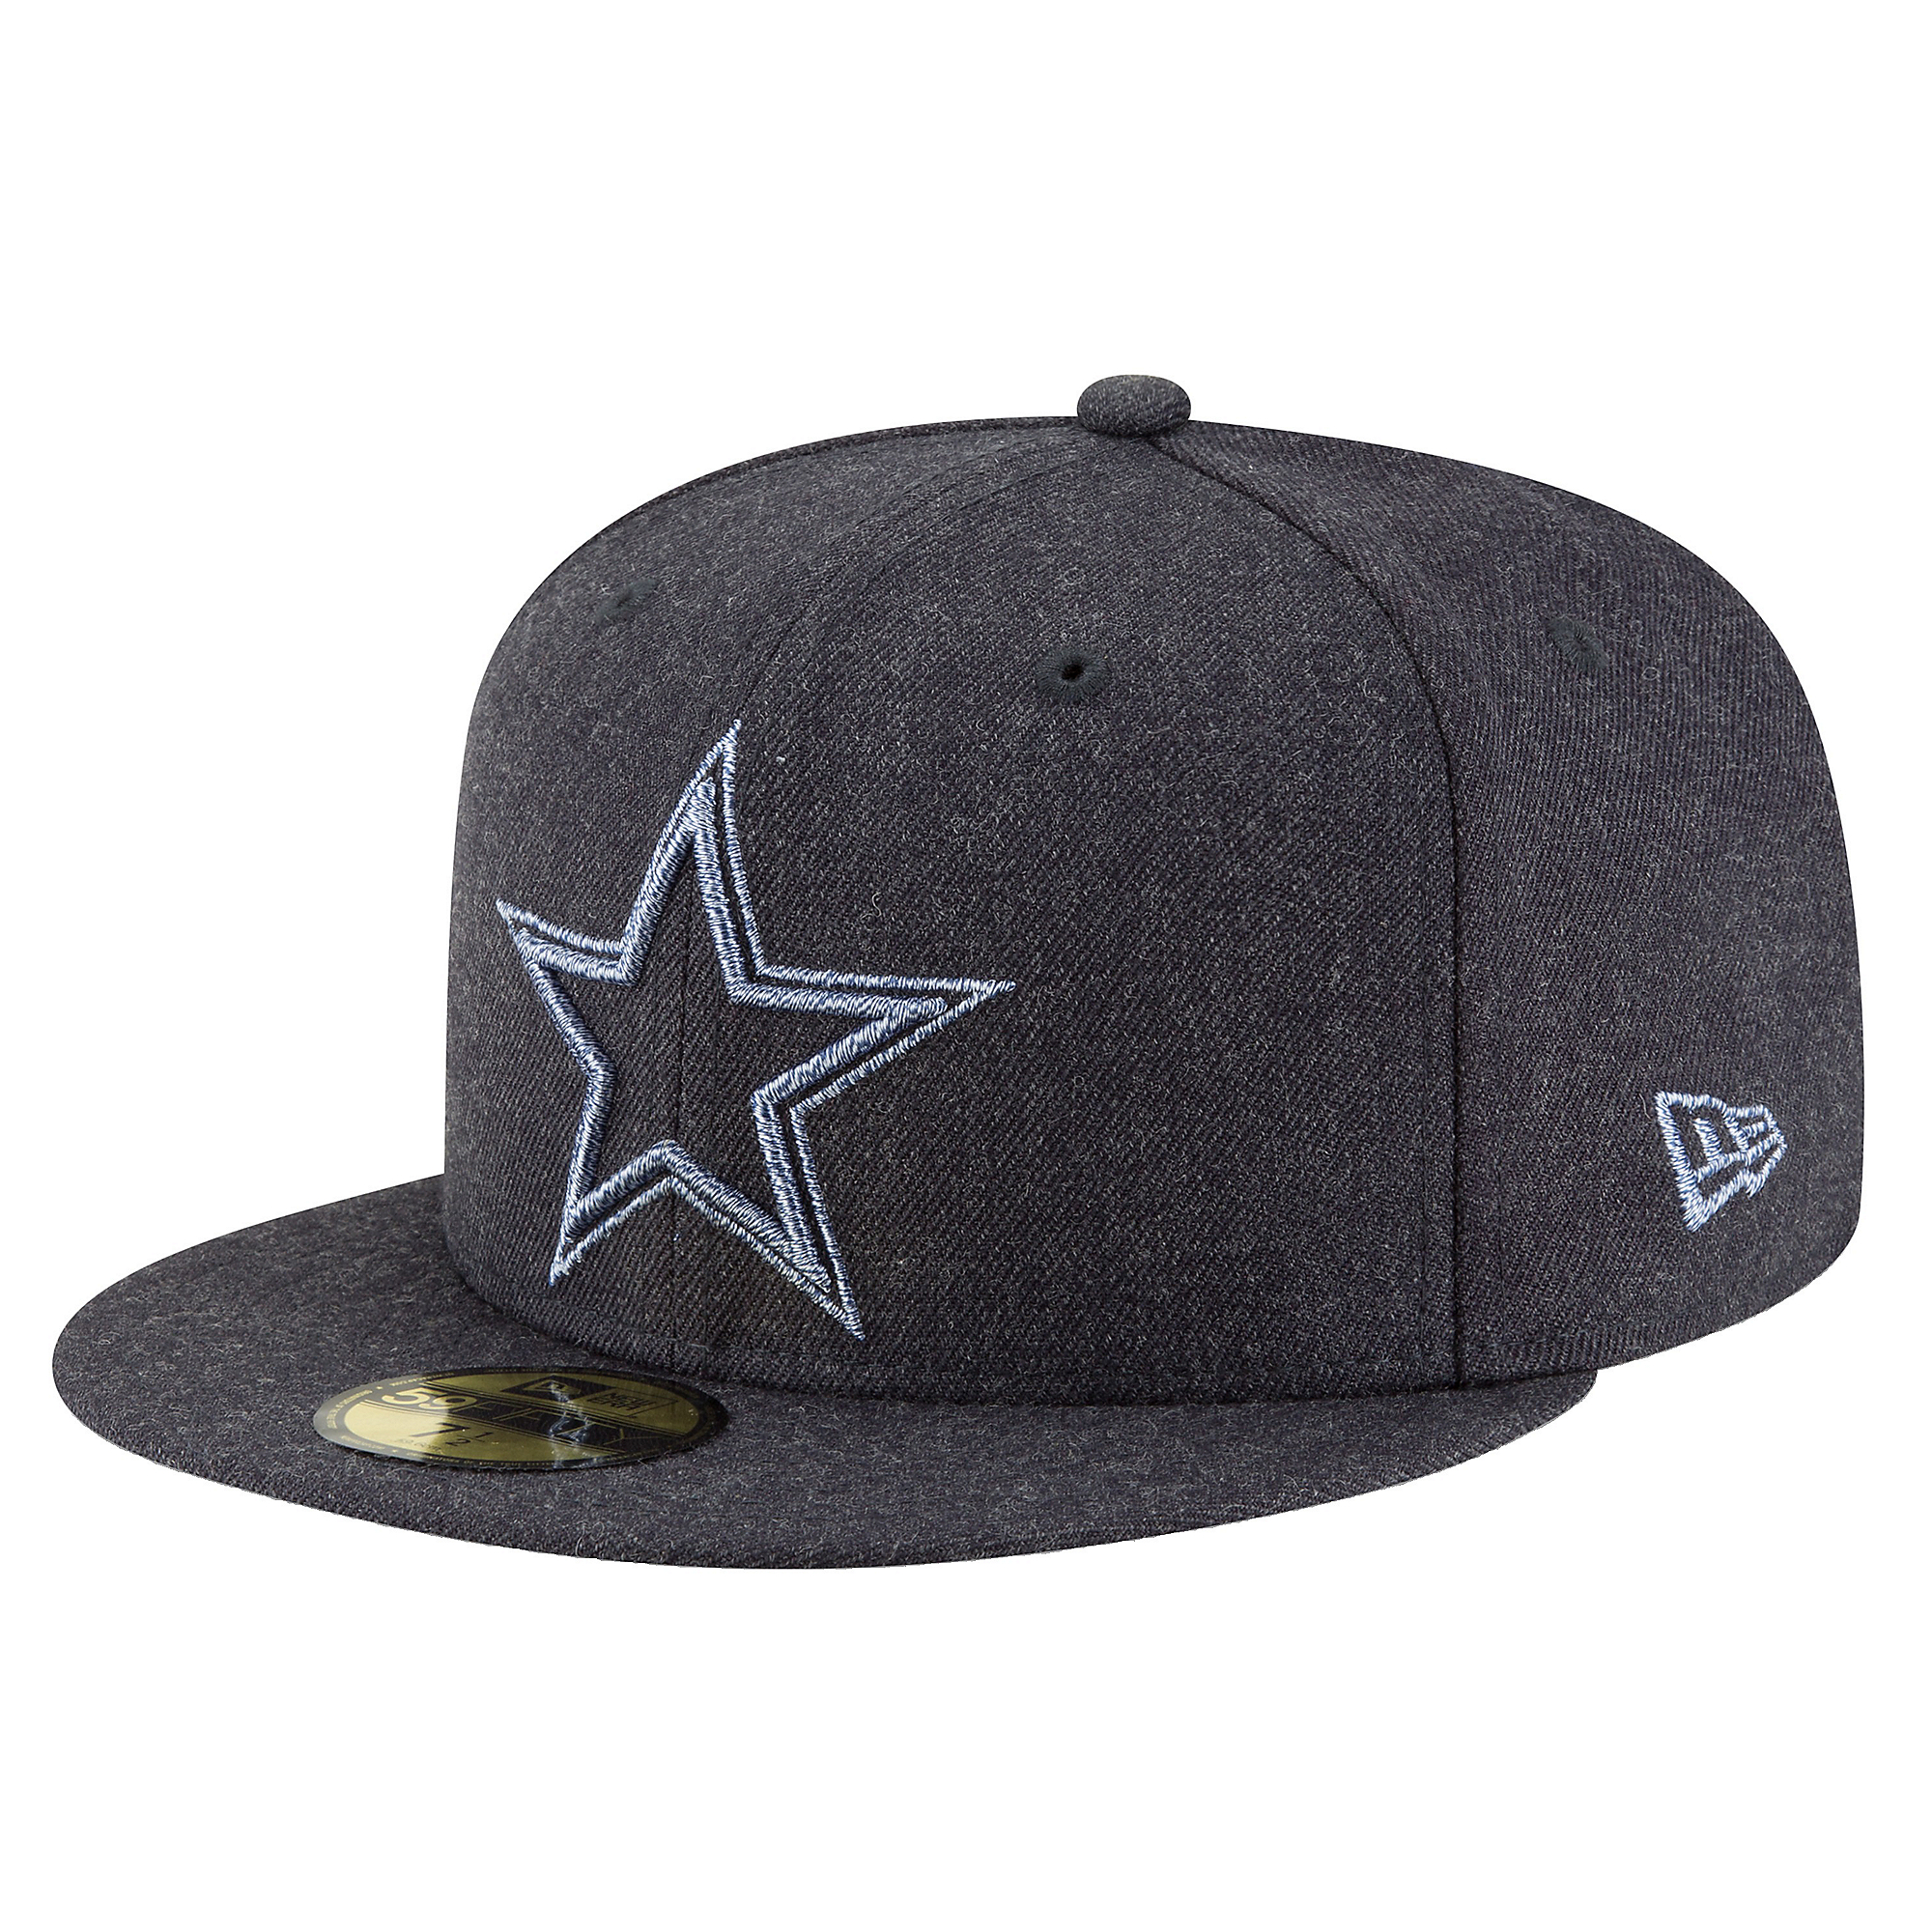 Dallas Cowboys New Era Mens Twisted Frame 59Fifty Hat